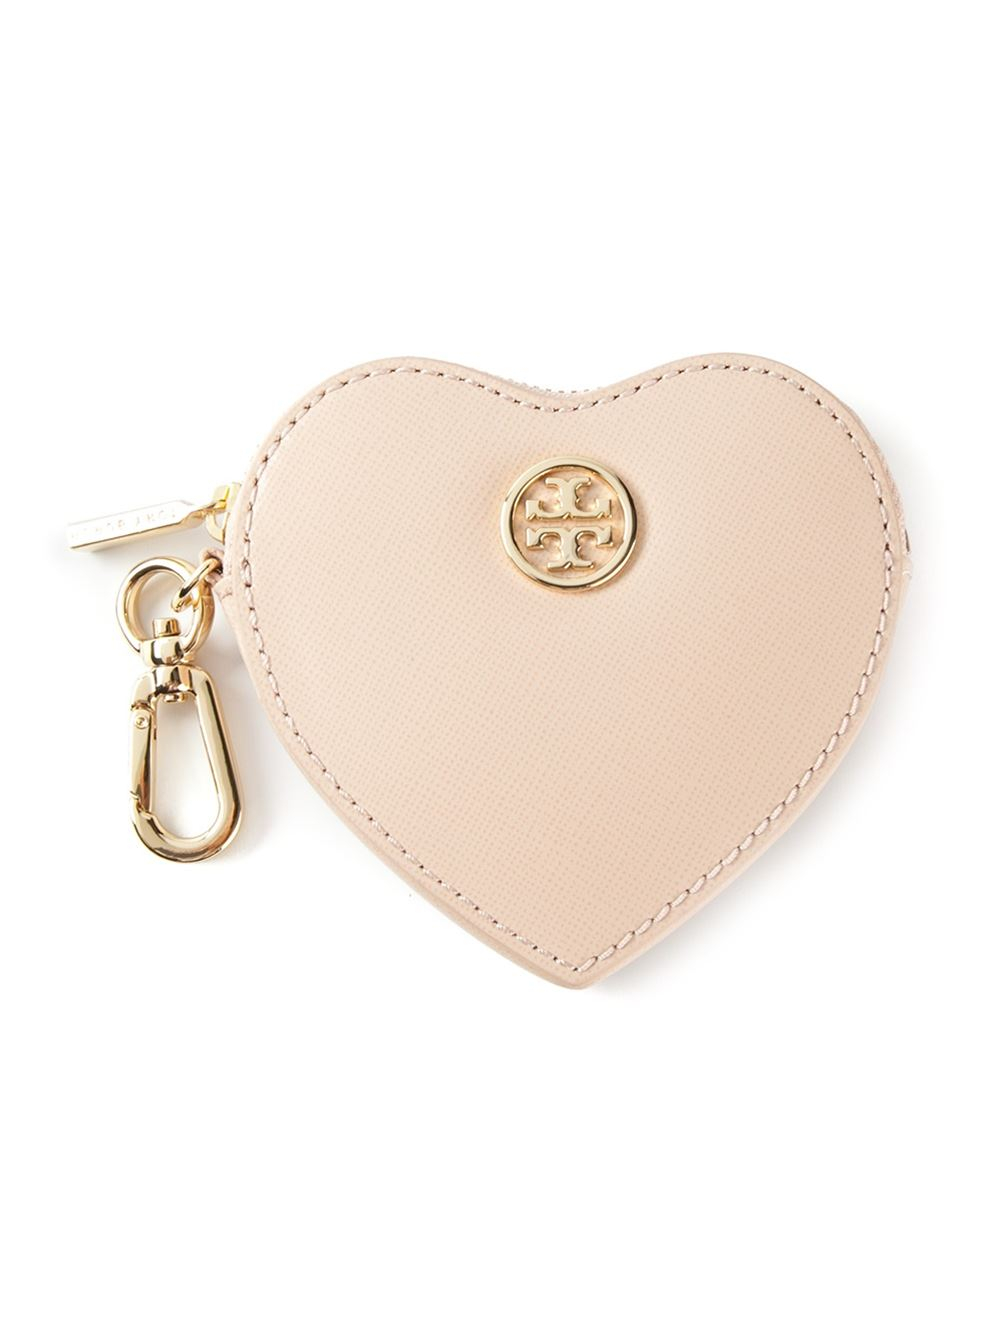 d196fda73543 Lyst - Tory Burch Heart Coin Case Key Fob in Pink